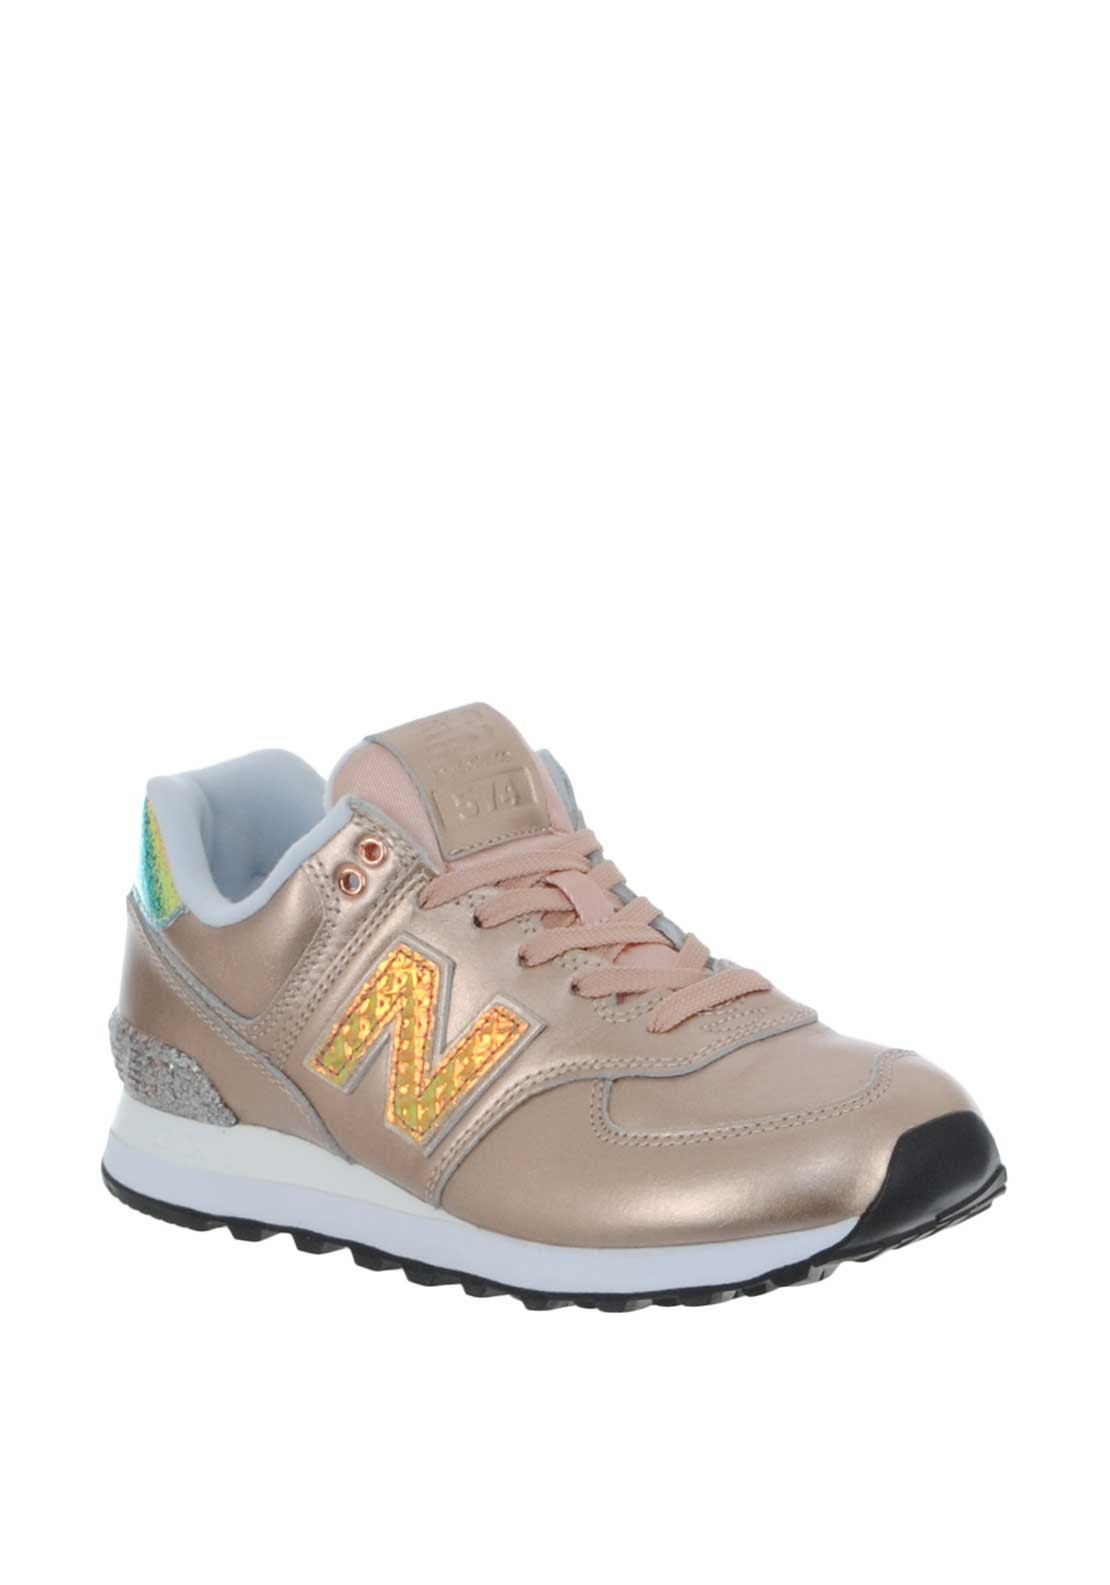 05047ec73dbd New Balance Womens 574 Metallic Trainers